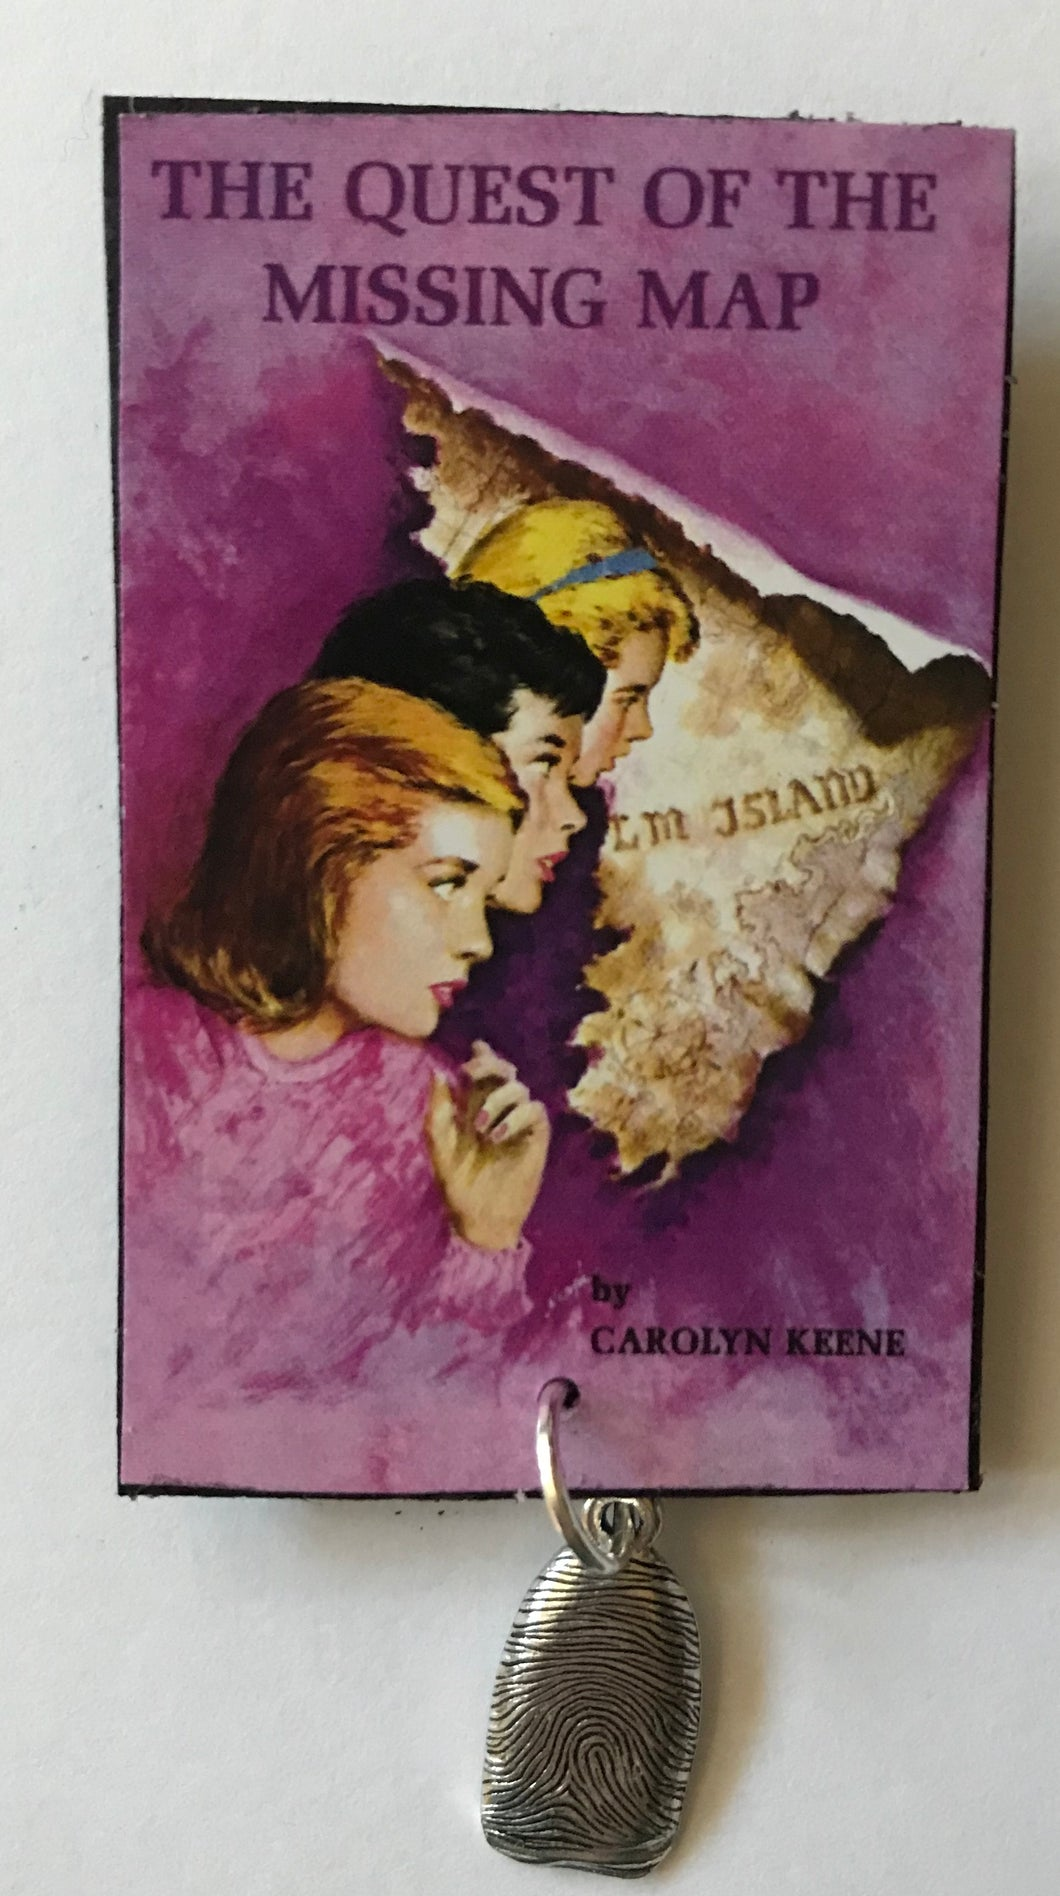 Nancy Drew Book Cover Missing Map Pin or Ornament